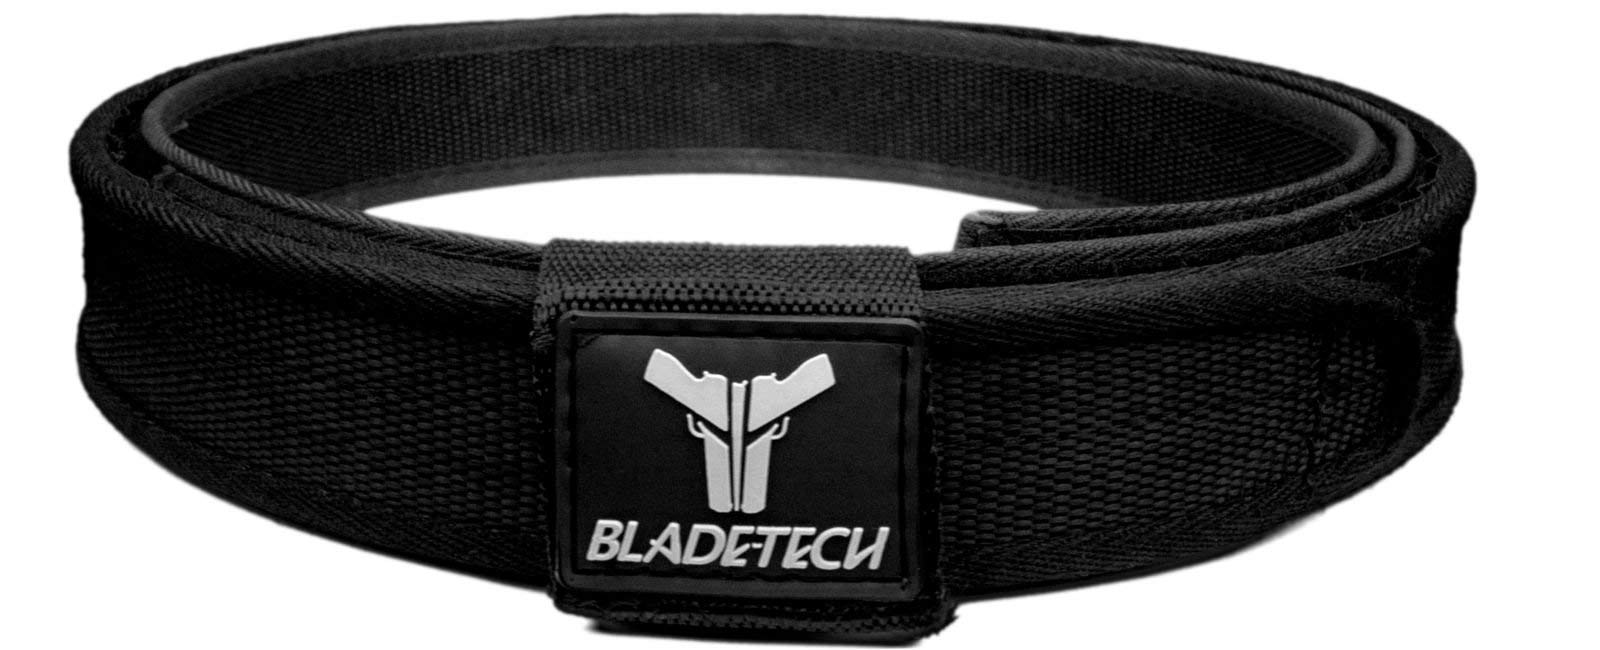 Blade-Tech Competition Gun Belt, 38-Inch, Black by Blade-Tech